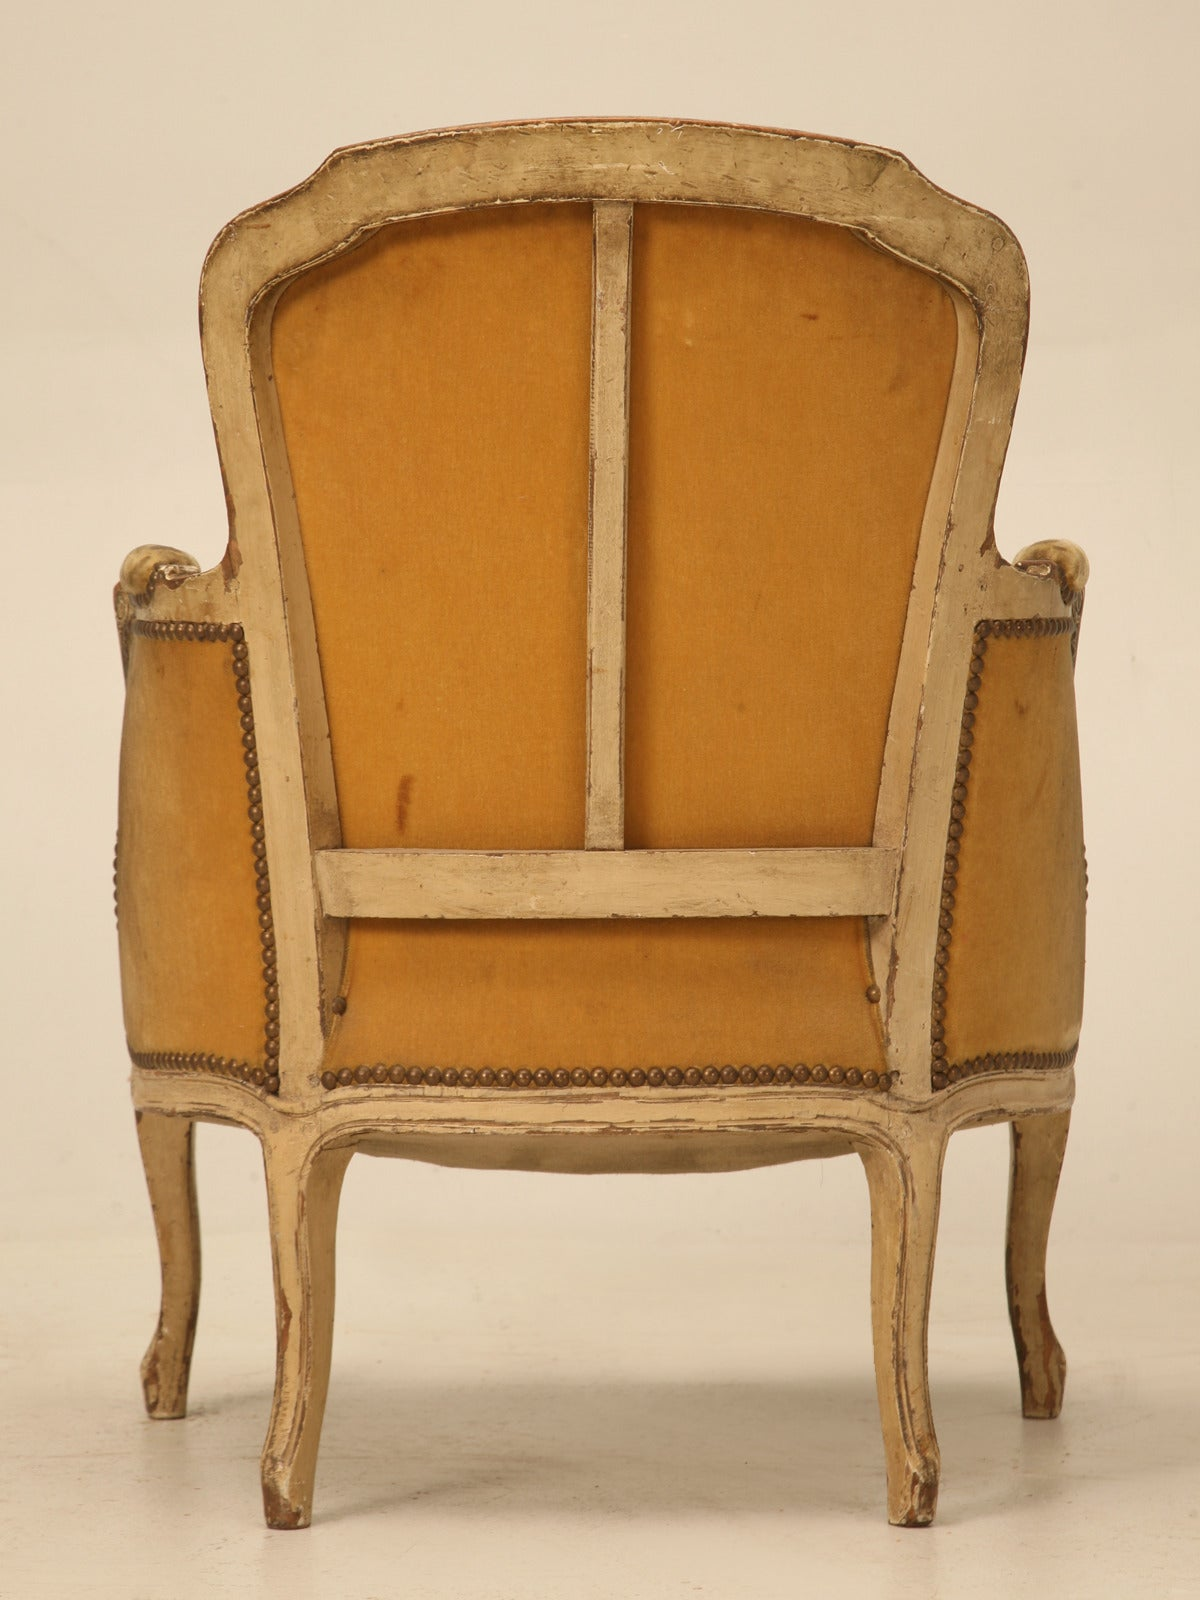 bergere chairs for sale oversized antique french louis xv style chair in old paint